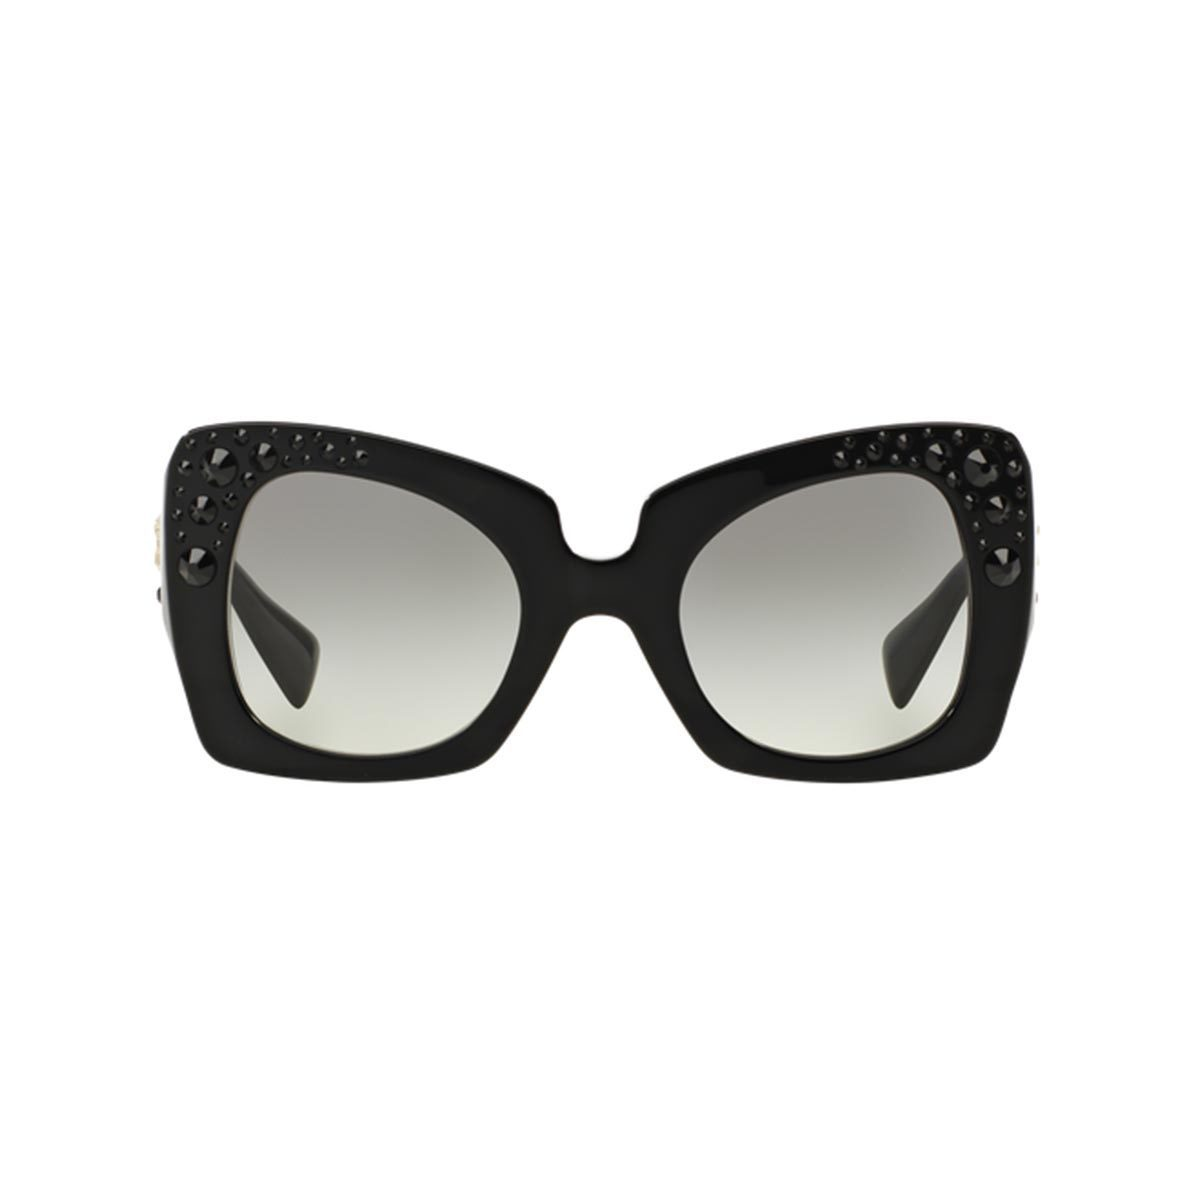 dc5b7e52f78e Shop Versace Women s VE4308B 54 Black Plastic Butterfly Oversized Sunglasses  - Free Shipping Today - Overstock - 10841149